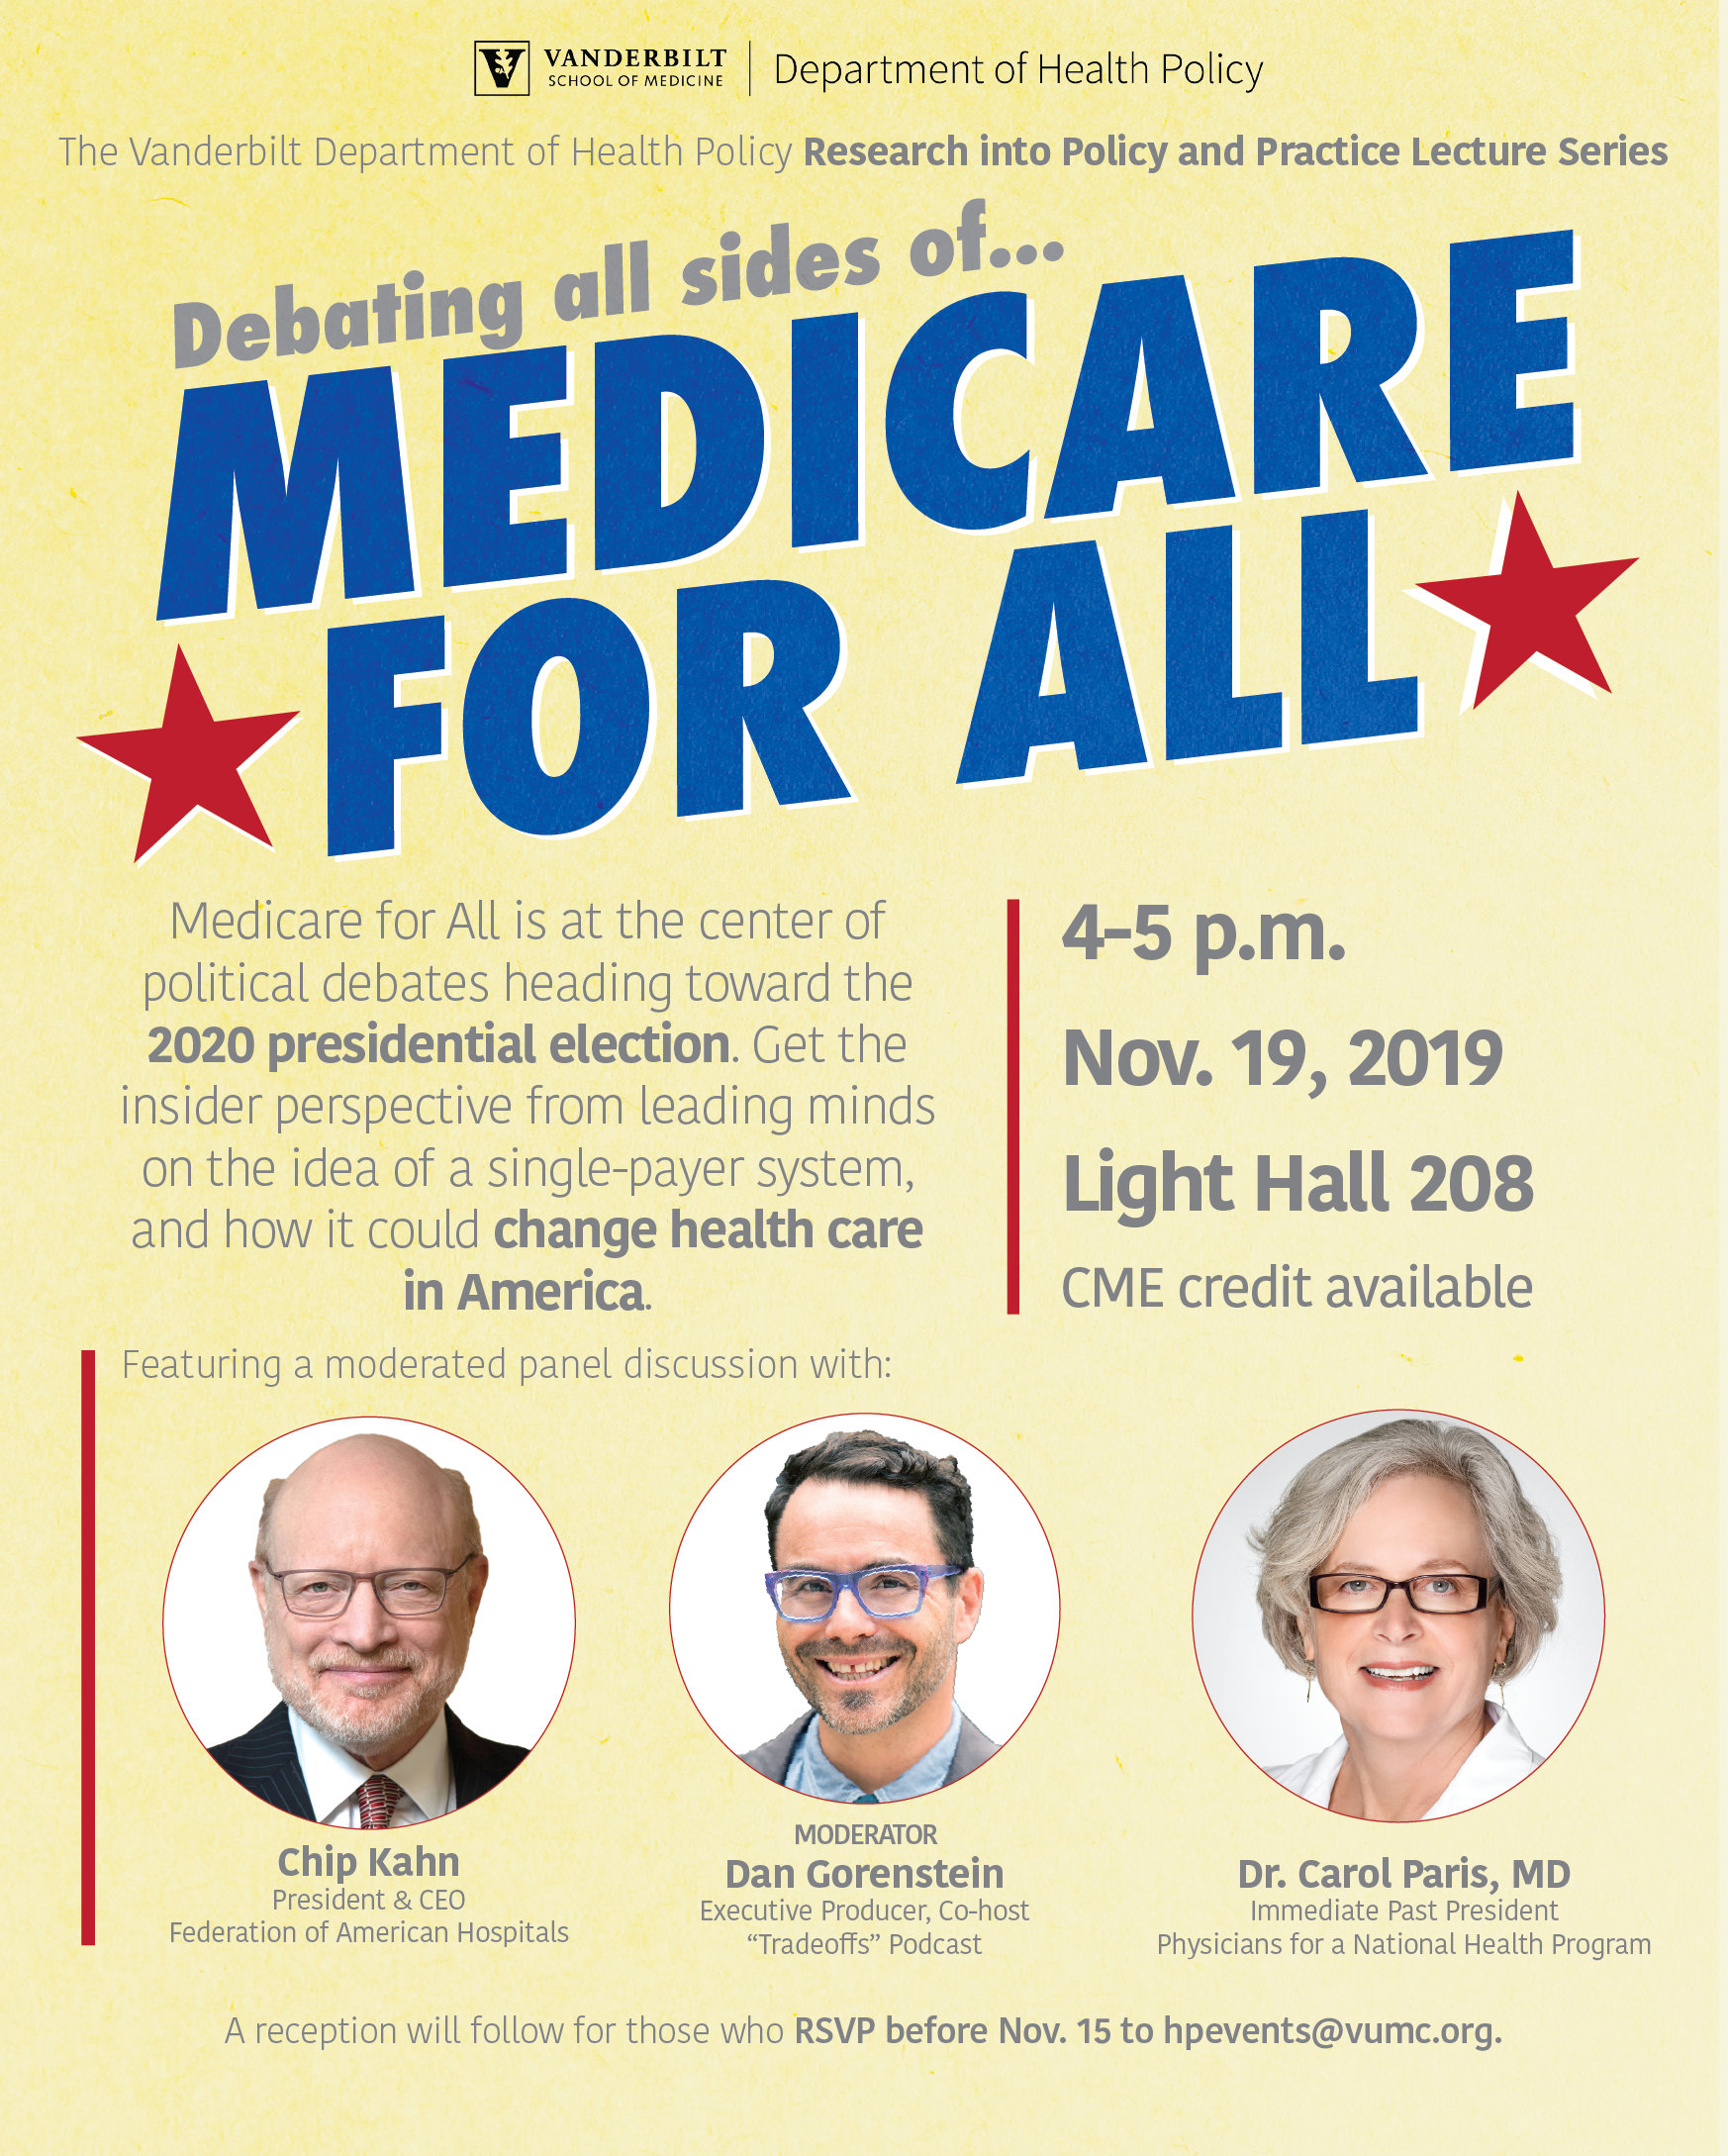 Fall 2019 Research into Policy and Practice Series - Medicare for all